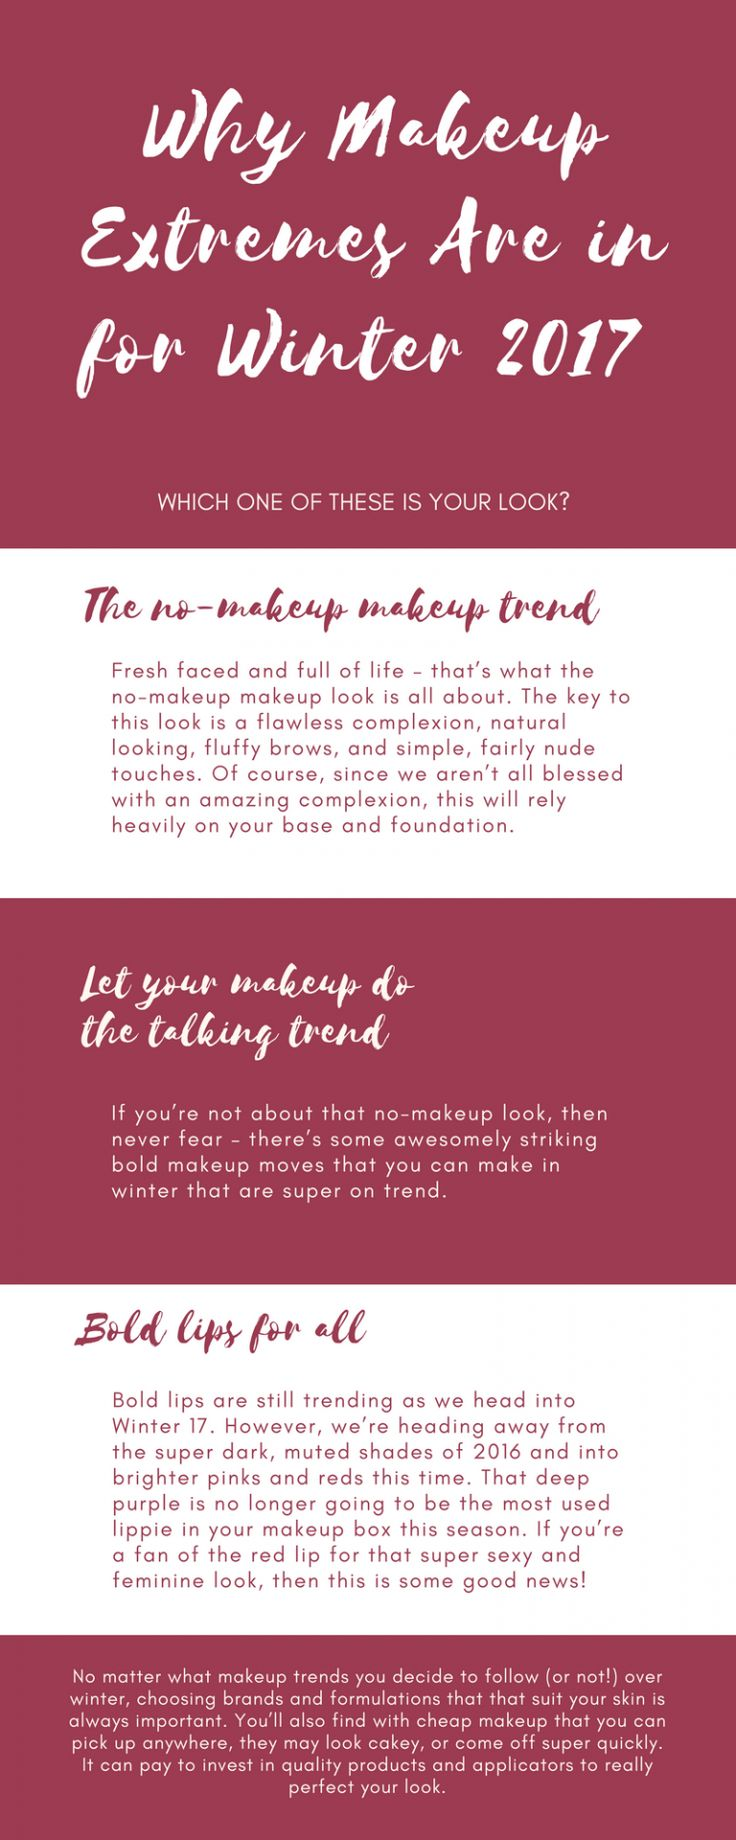 #Makeuptrends change with the changes in seasons. There are two latest makeup extremes which are in for this winter i.e. little or lots of Makeup. However, you may learn the best makeup techniques by joining the best #makeupacademy. Go through this Infographic to know the details regarding makeup extremes.